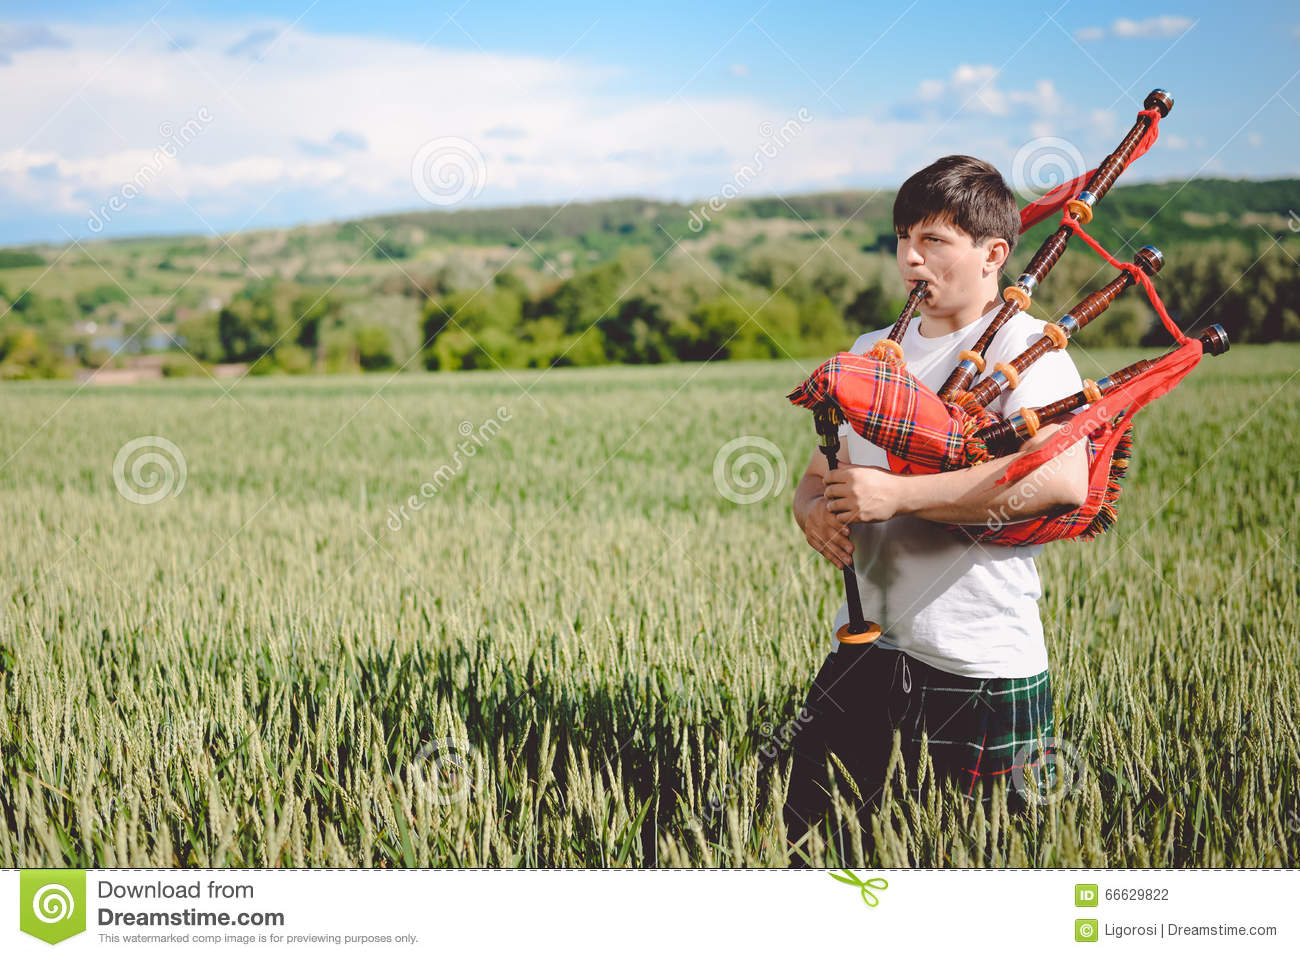 Male enjoying playing pipes in traditional kilt on green outdoors copy space summer field.